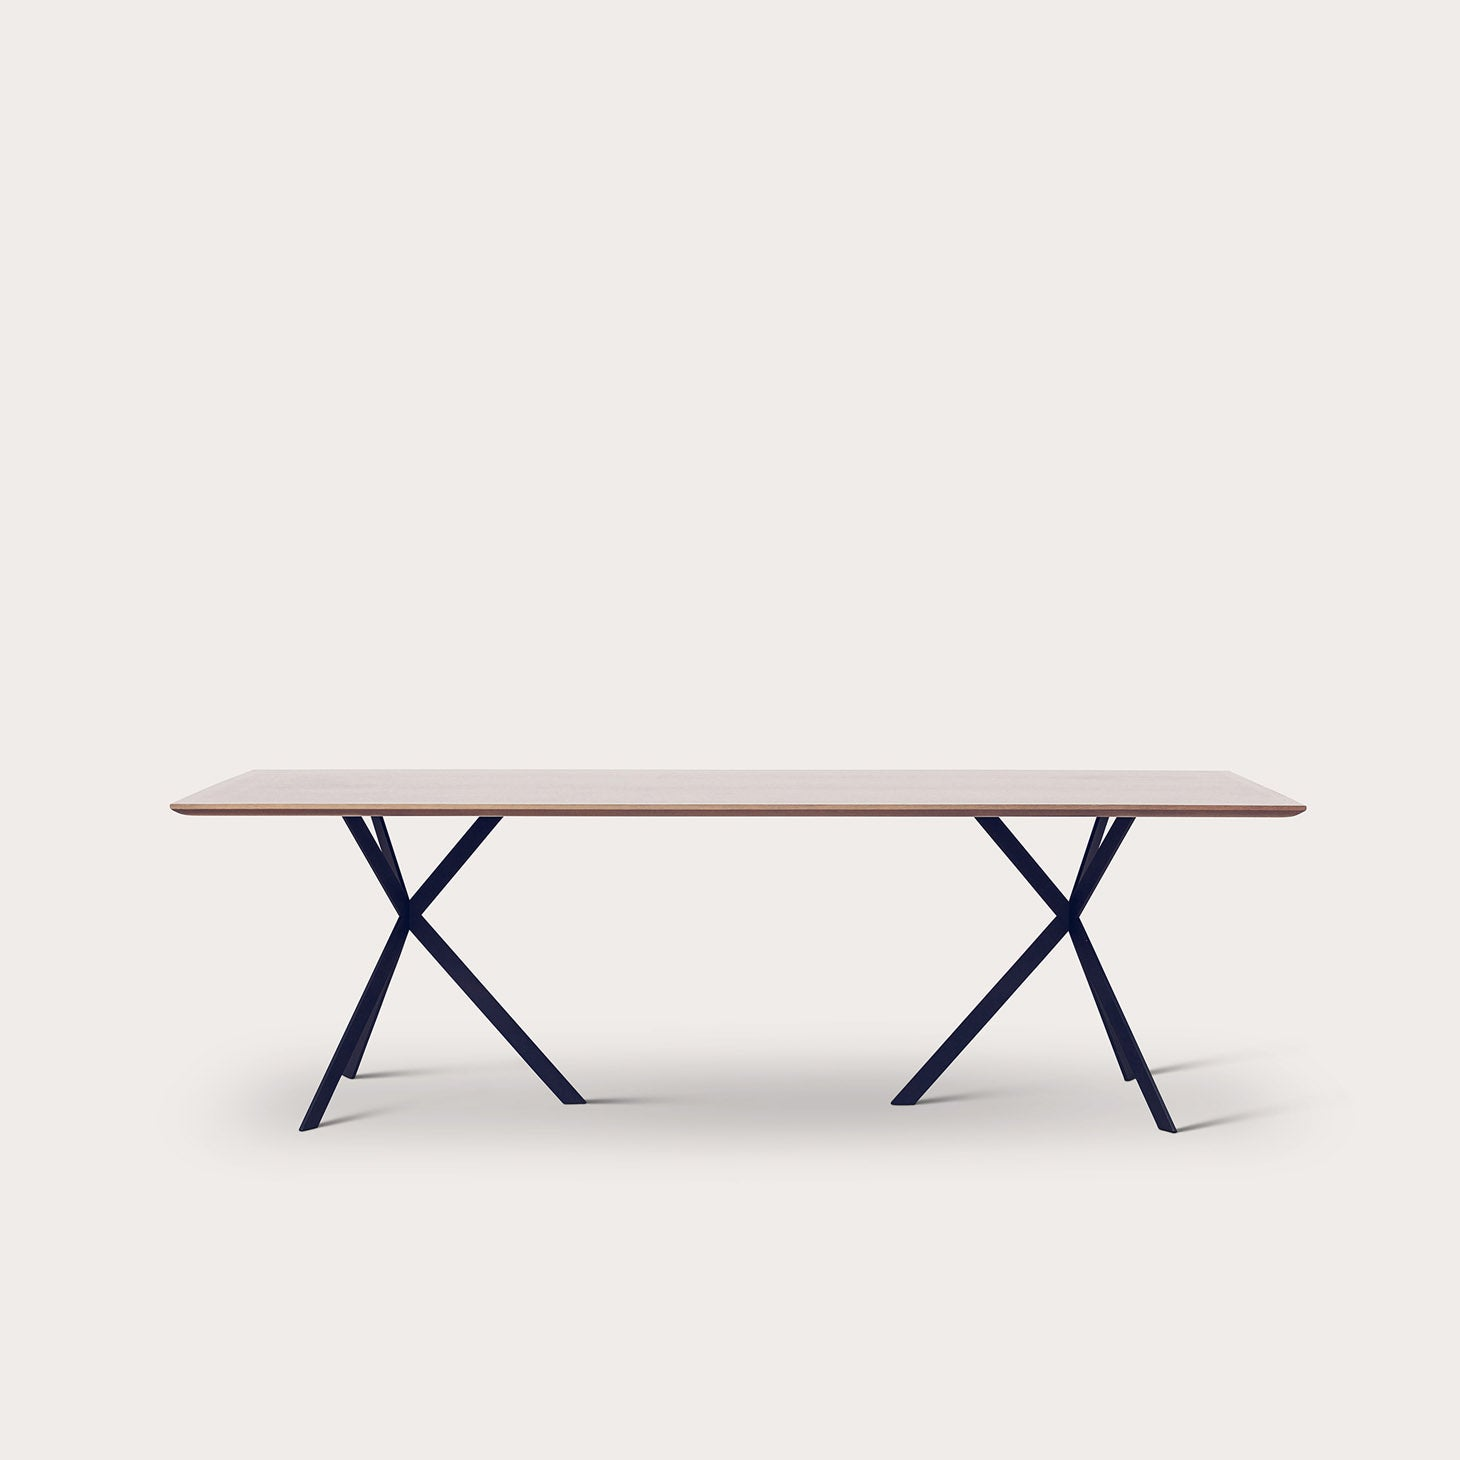 ILE Tables Christophe Delcourt Designer Furniture Sku: 008-230-10067